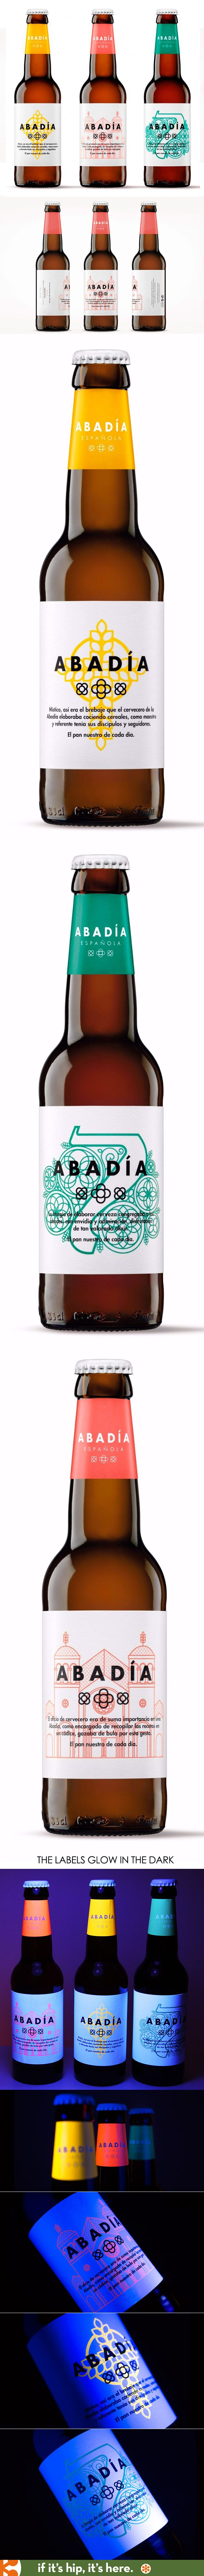 Abadia Beer has lovely labels designs that glow in the dark. Designed by TSMGO (The Show Must Go On)